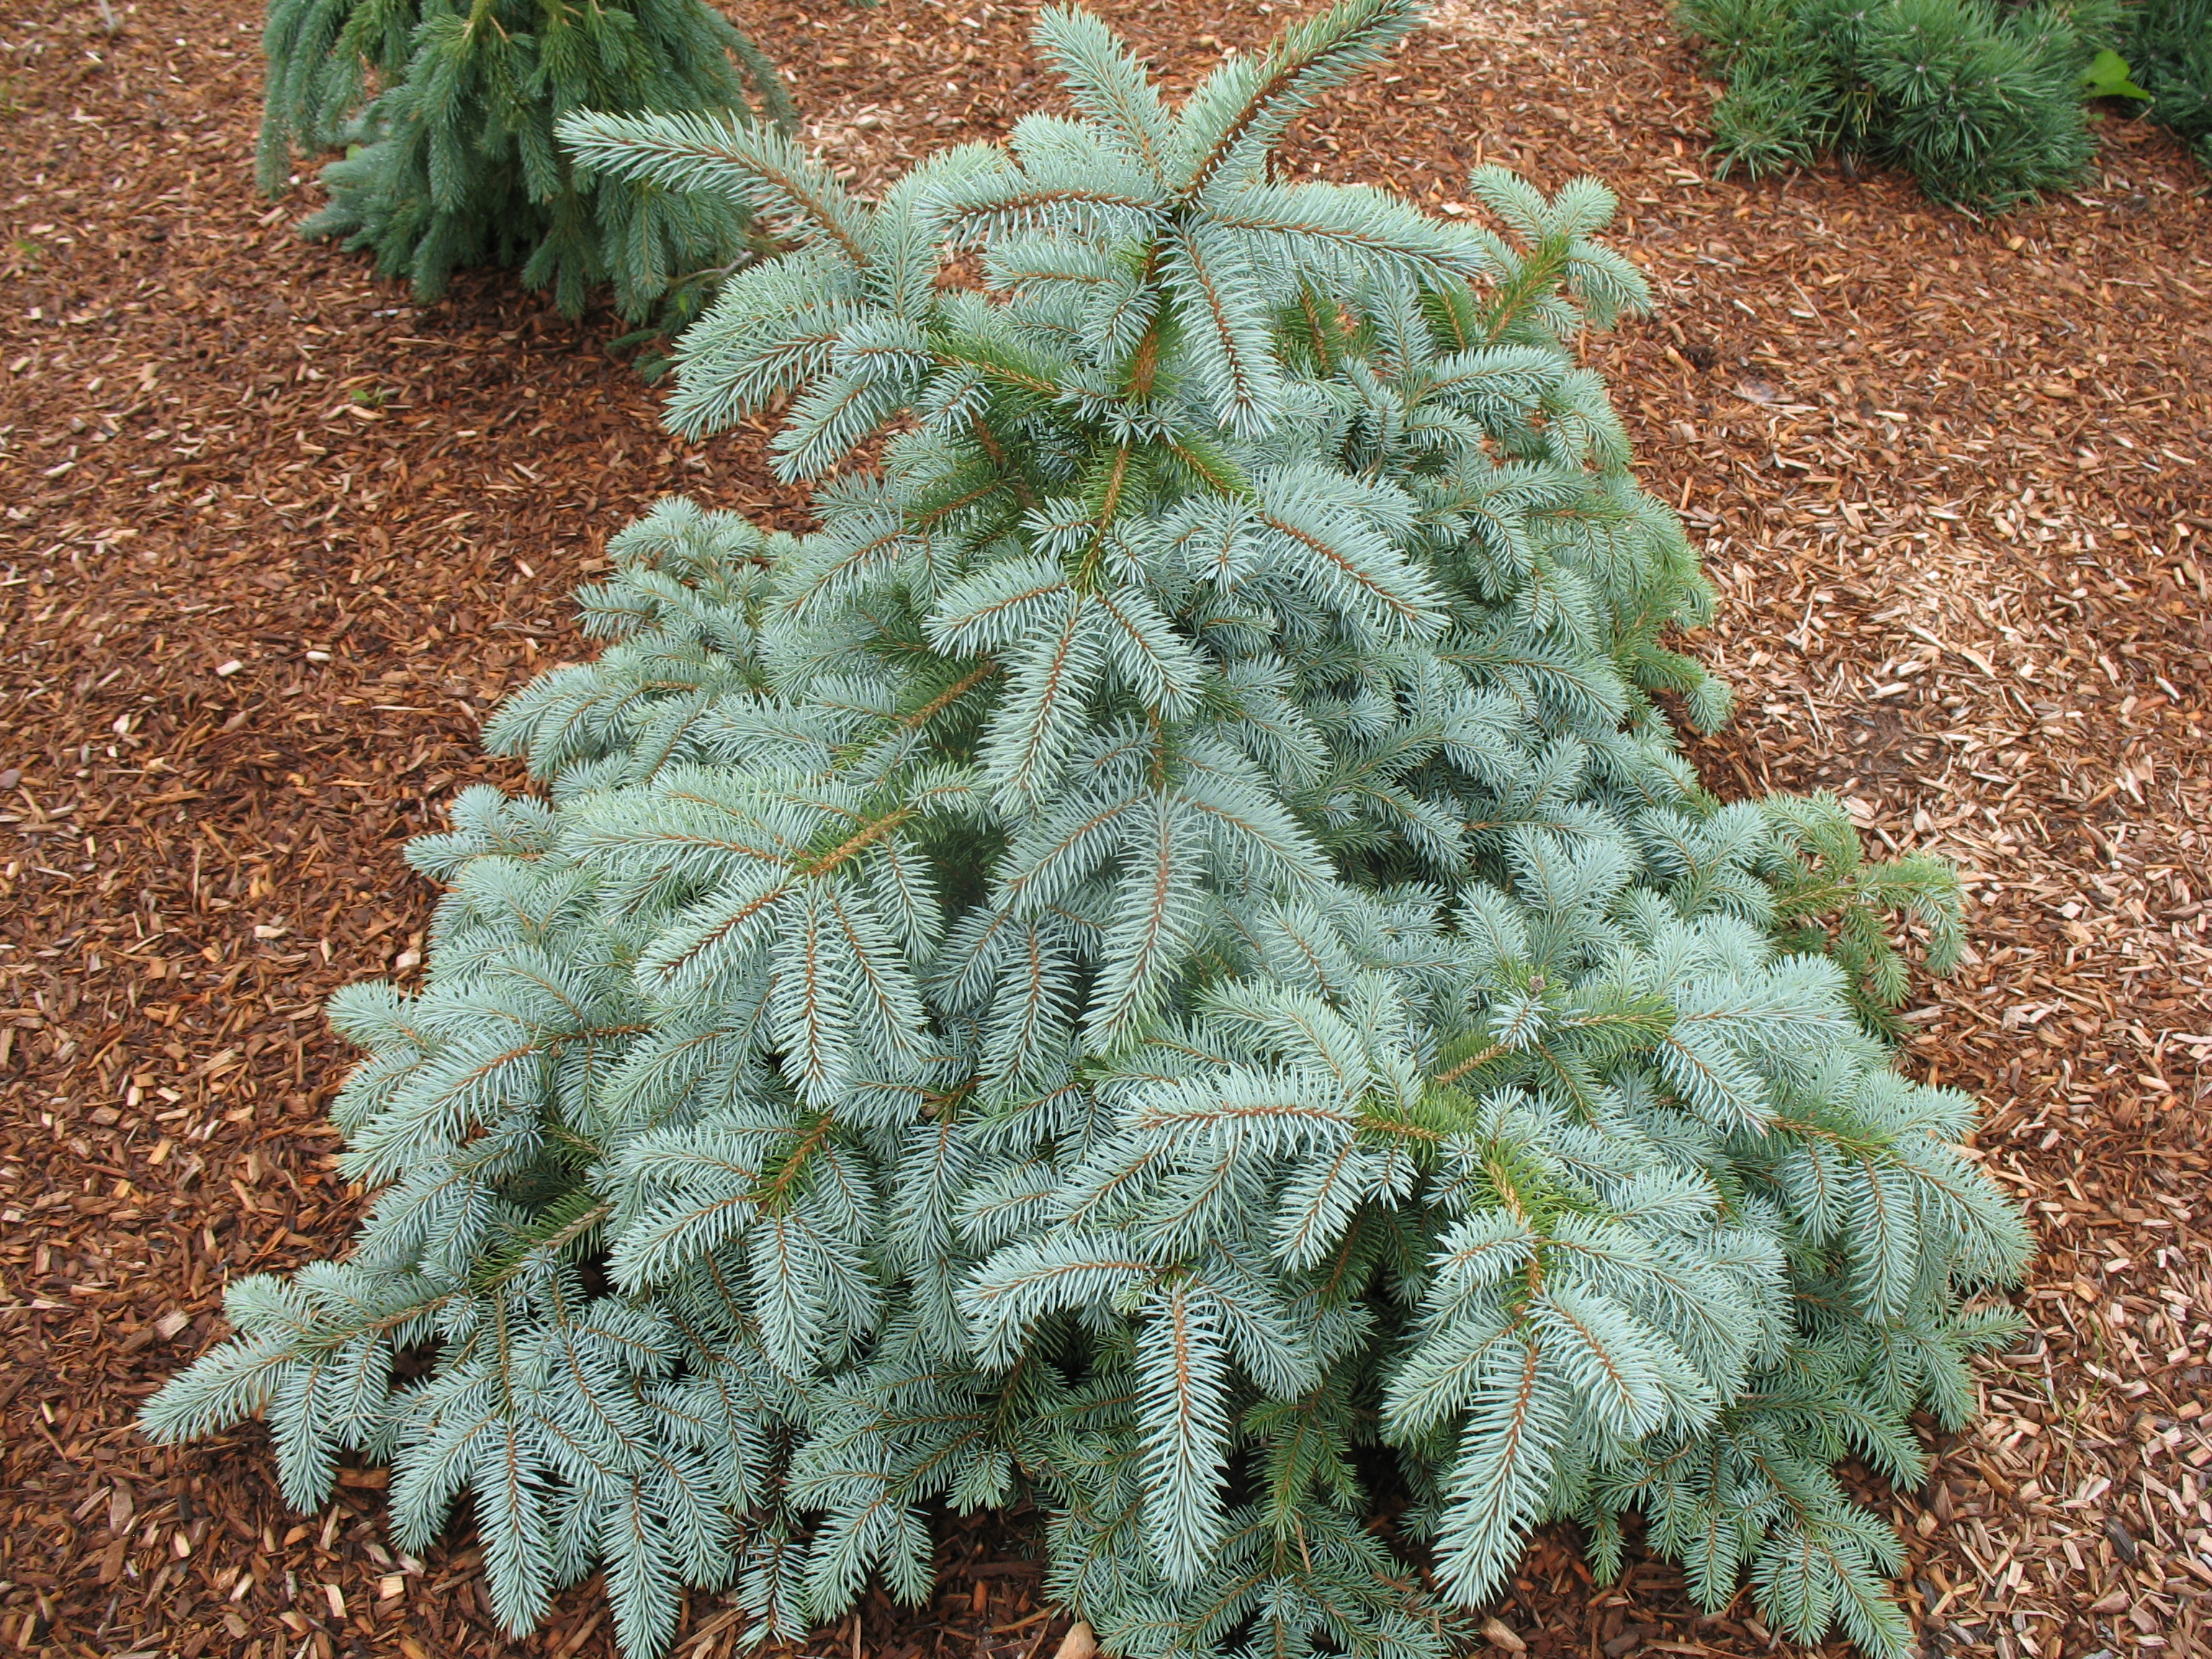 Picea pungens glauca 'Henry B. Fowler' / Picea pungens glauca 'Henry B. Fowler'